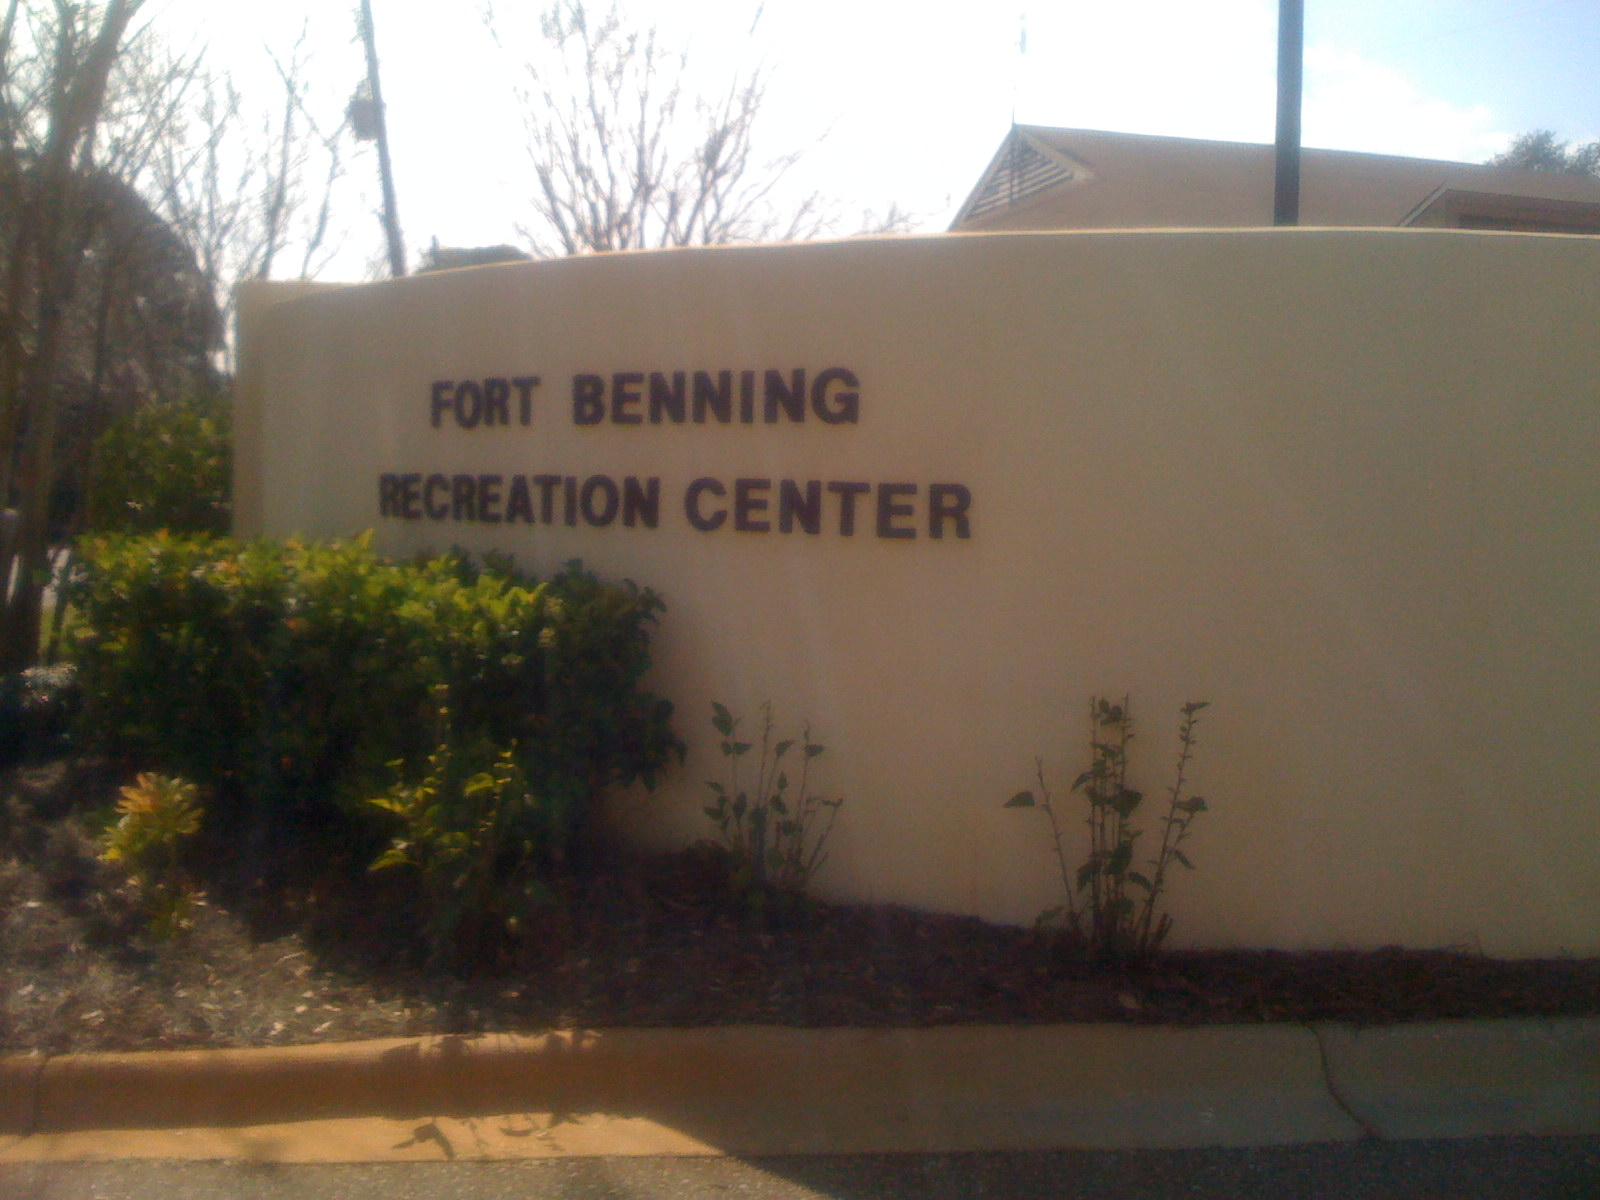 Fort Benning Destin Florida Recreation